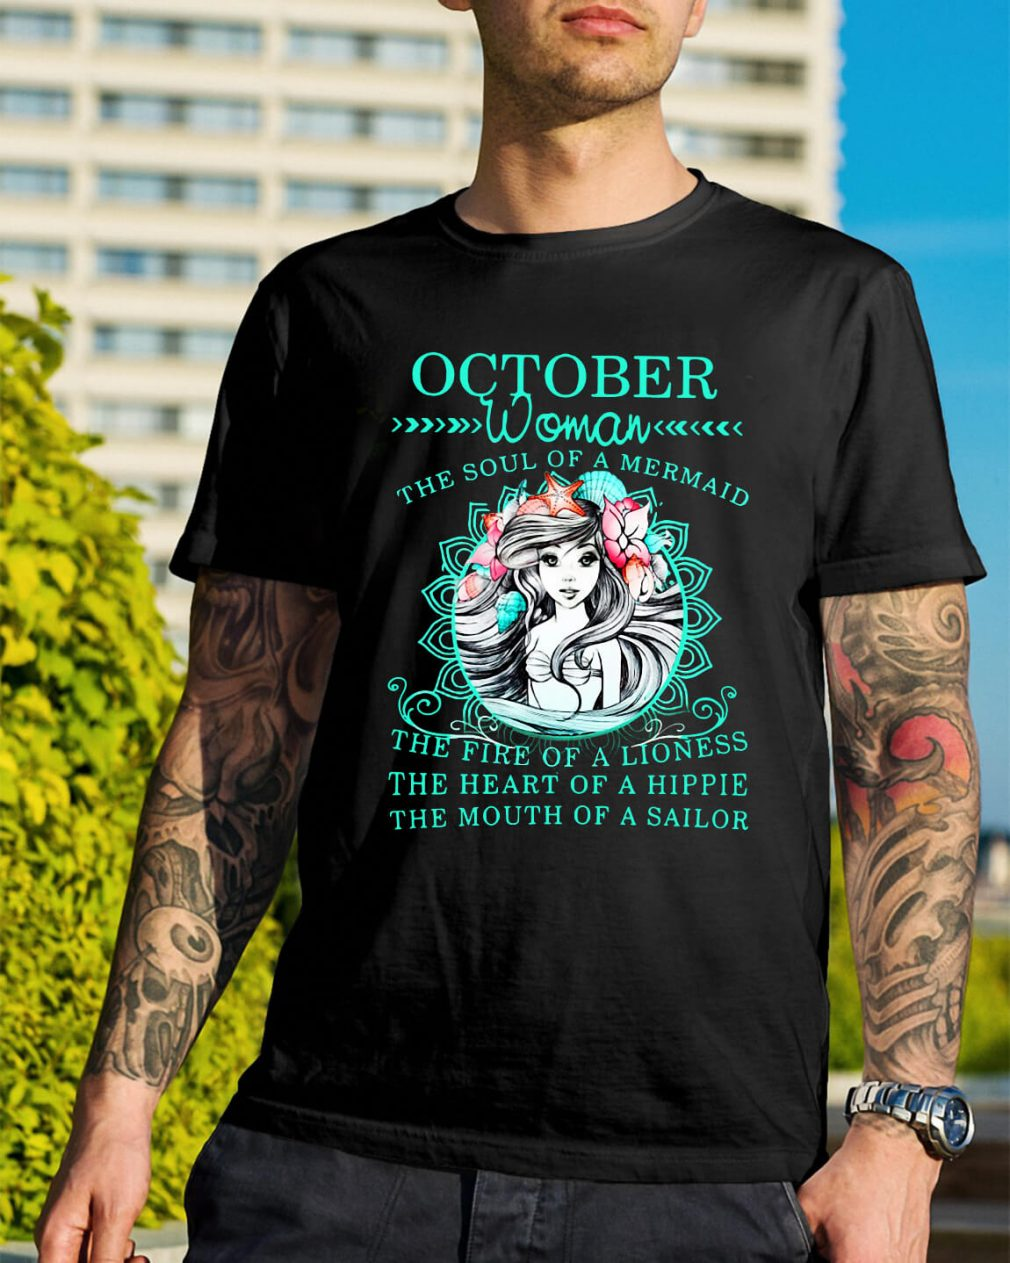 October woman the soul of a Mermaid the fine of a lioness shirt